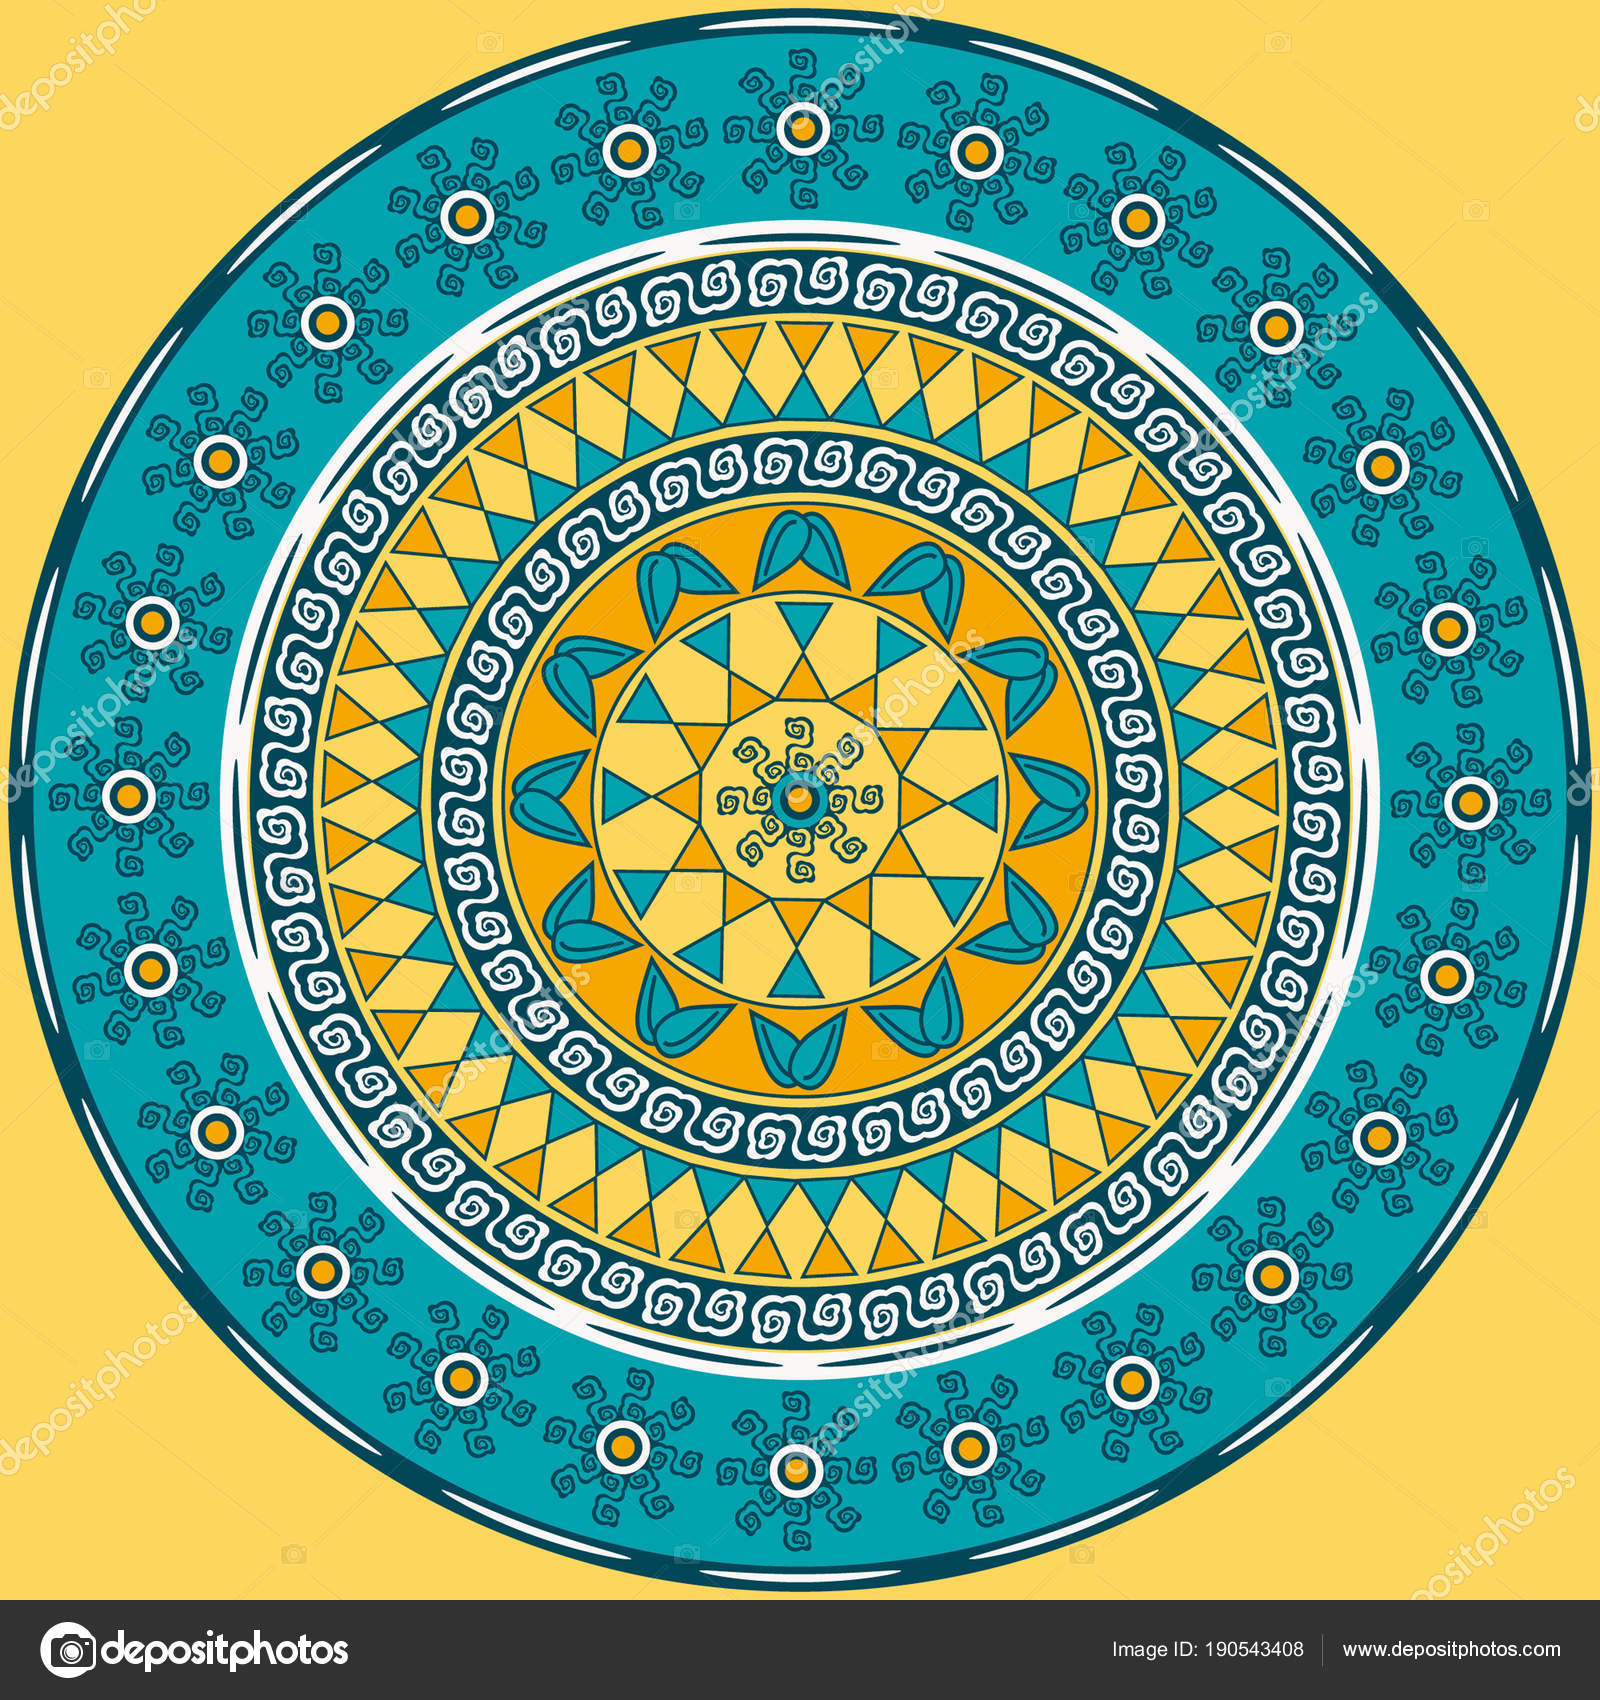 Vector circular pattern mandala of abstract geometric shapes